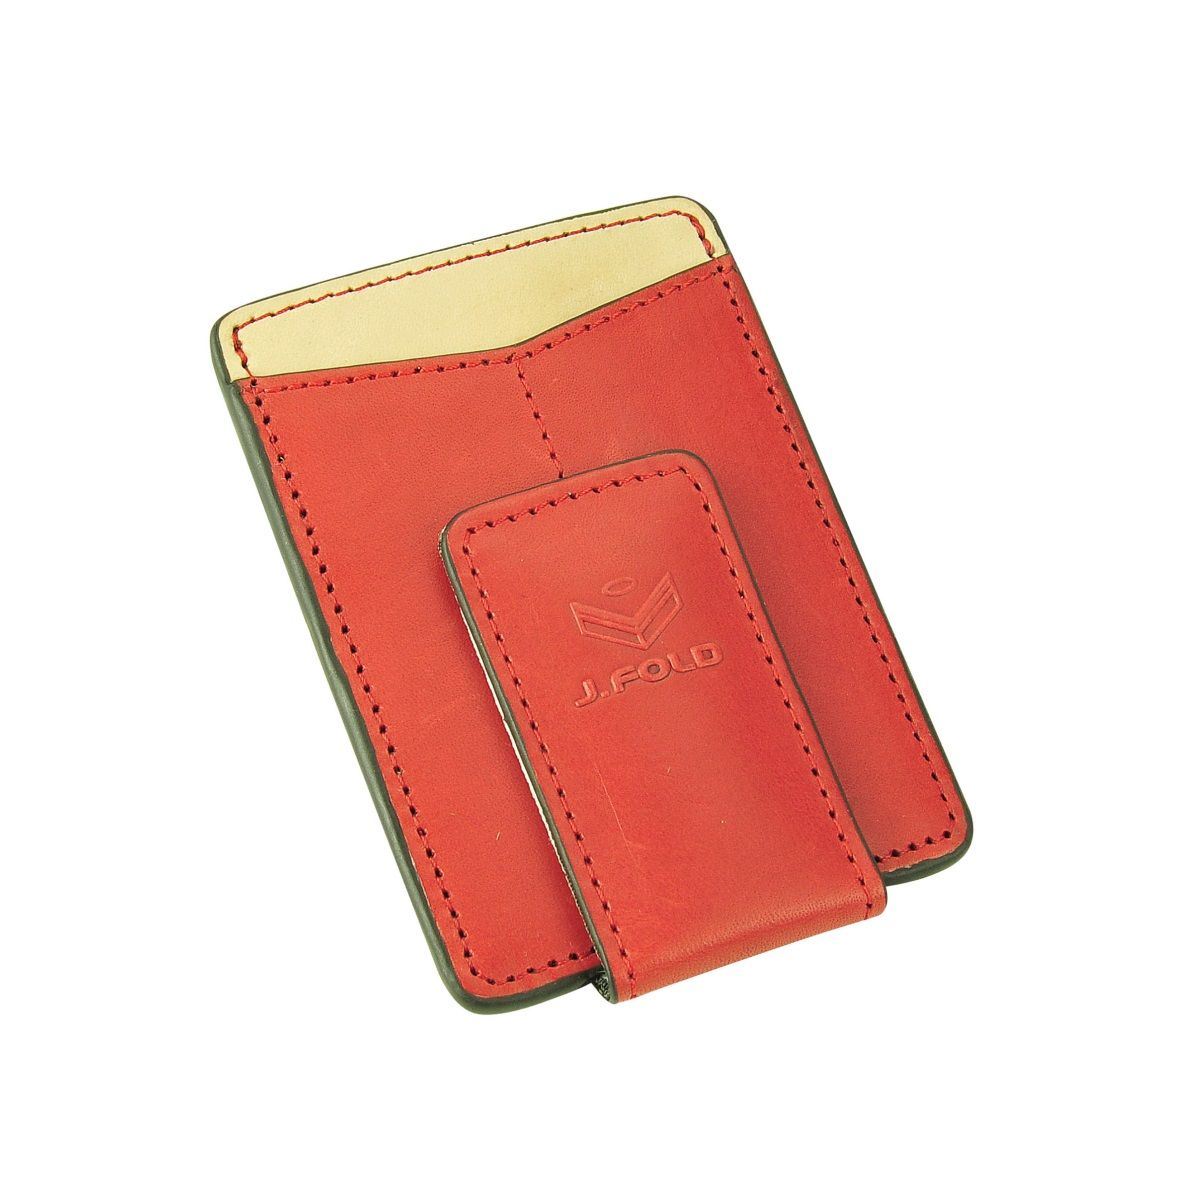 J.FOLD Magnetic Money Clip Wallet - Red